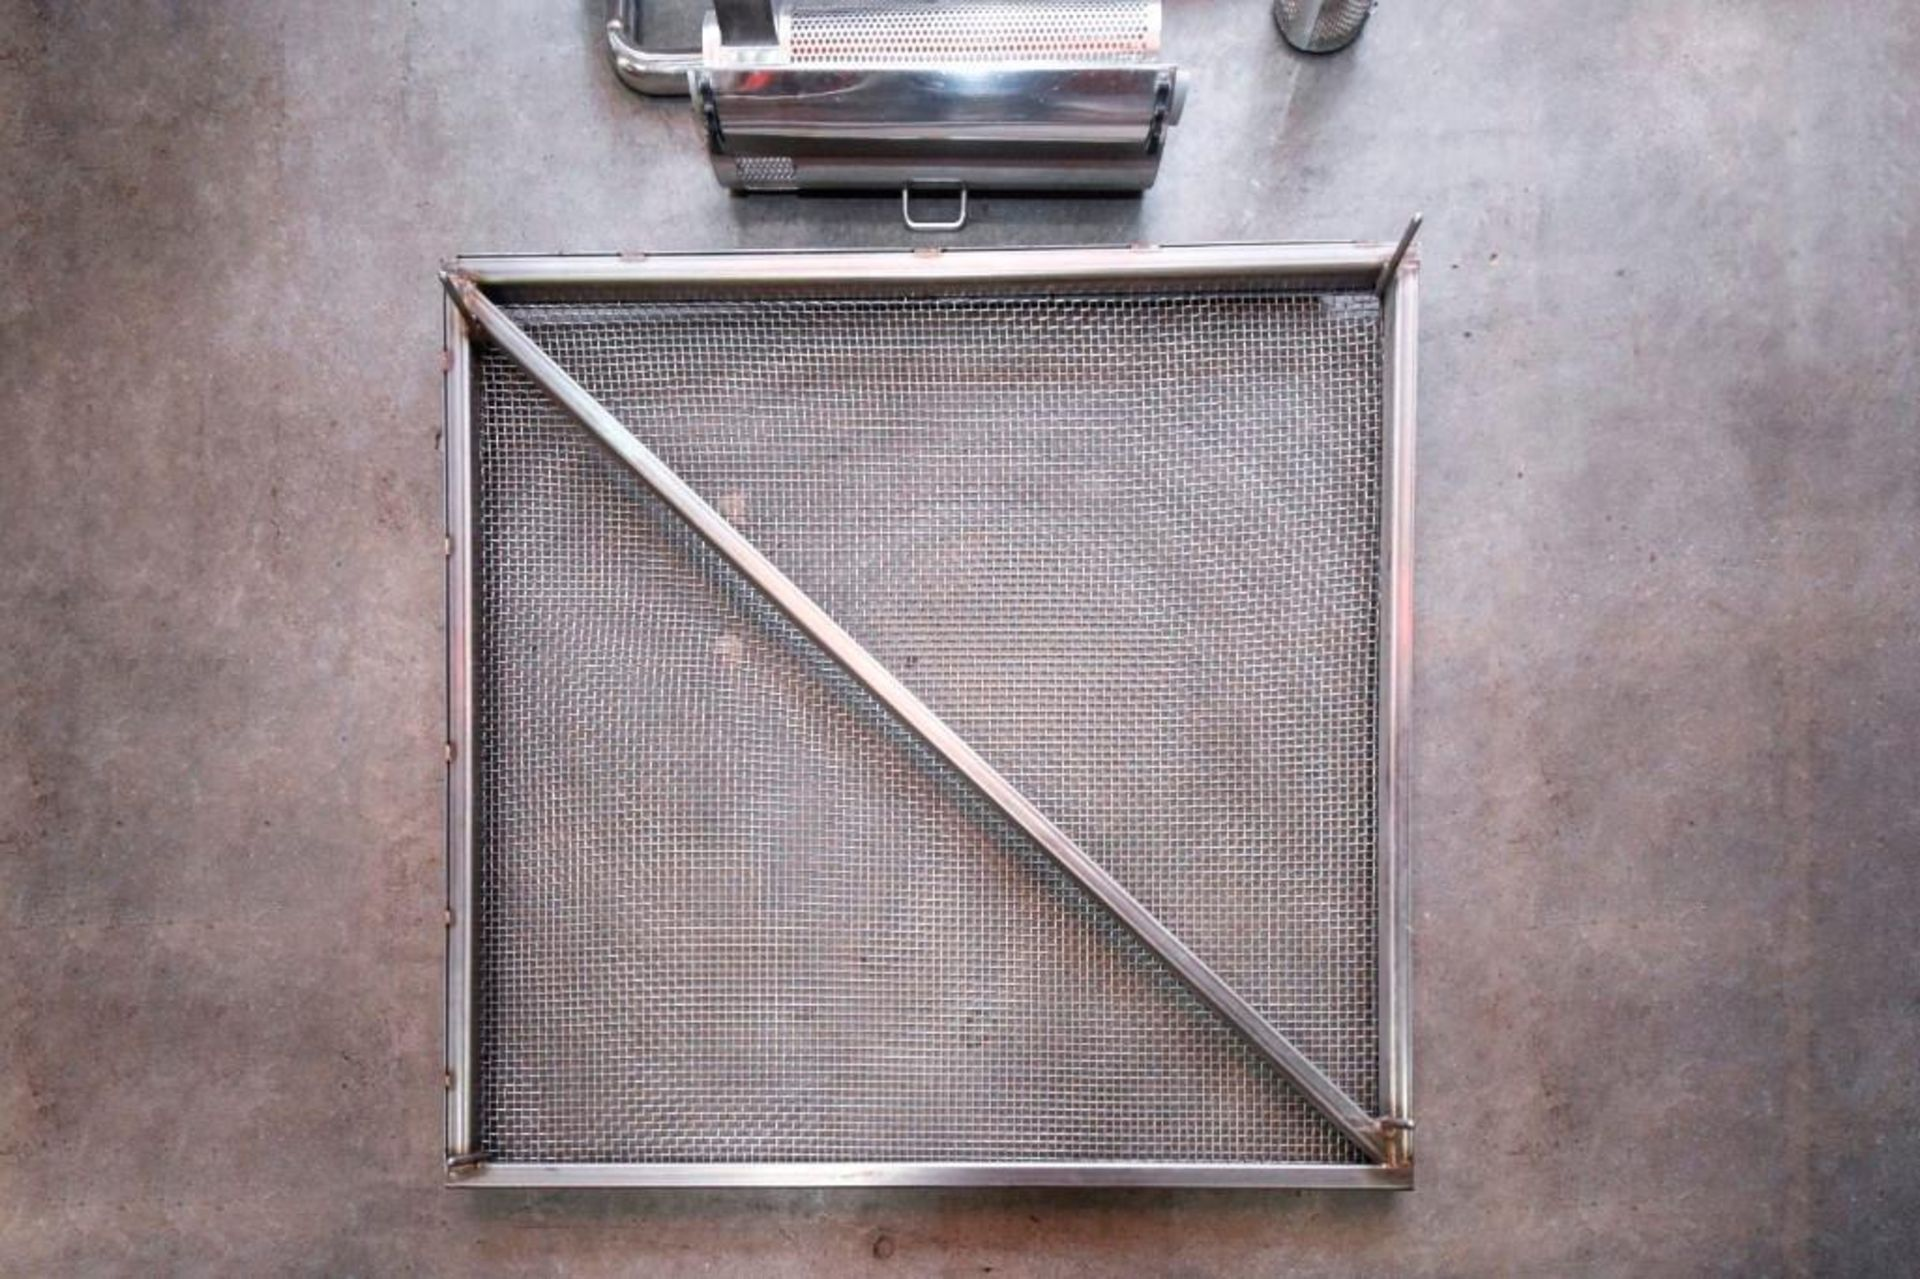 Screen and parts for Hopper and capsule deduster - Image 10 of 11